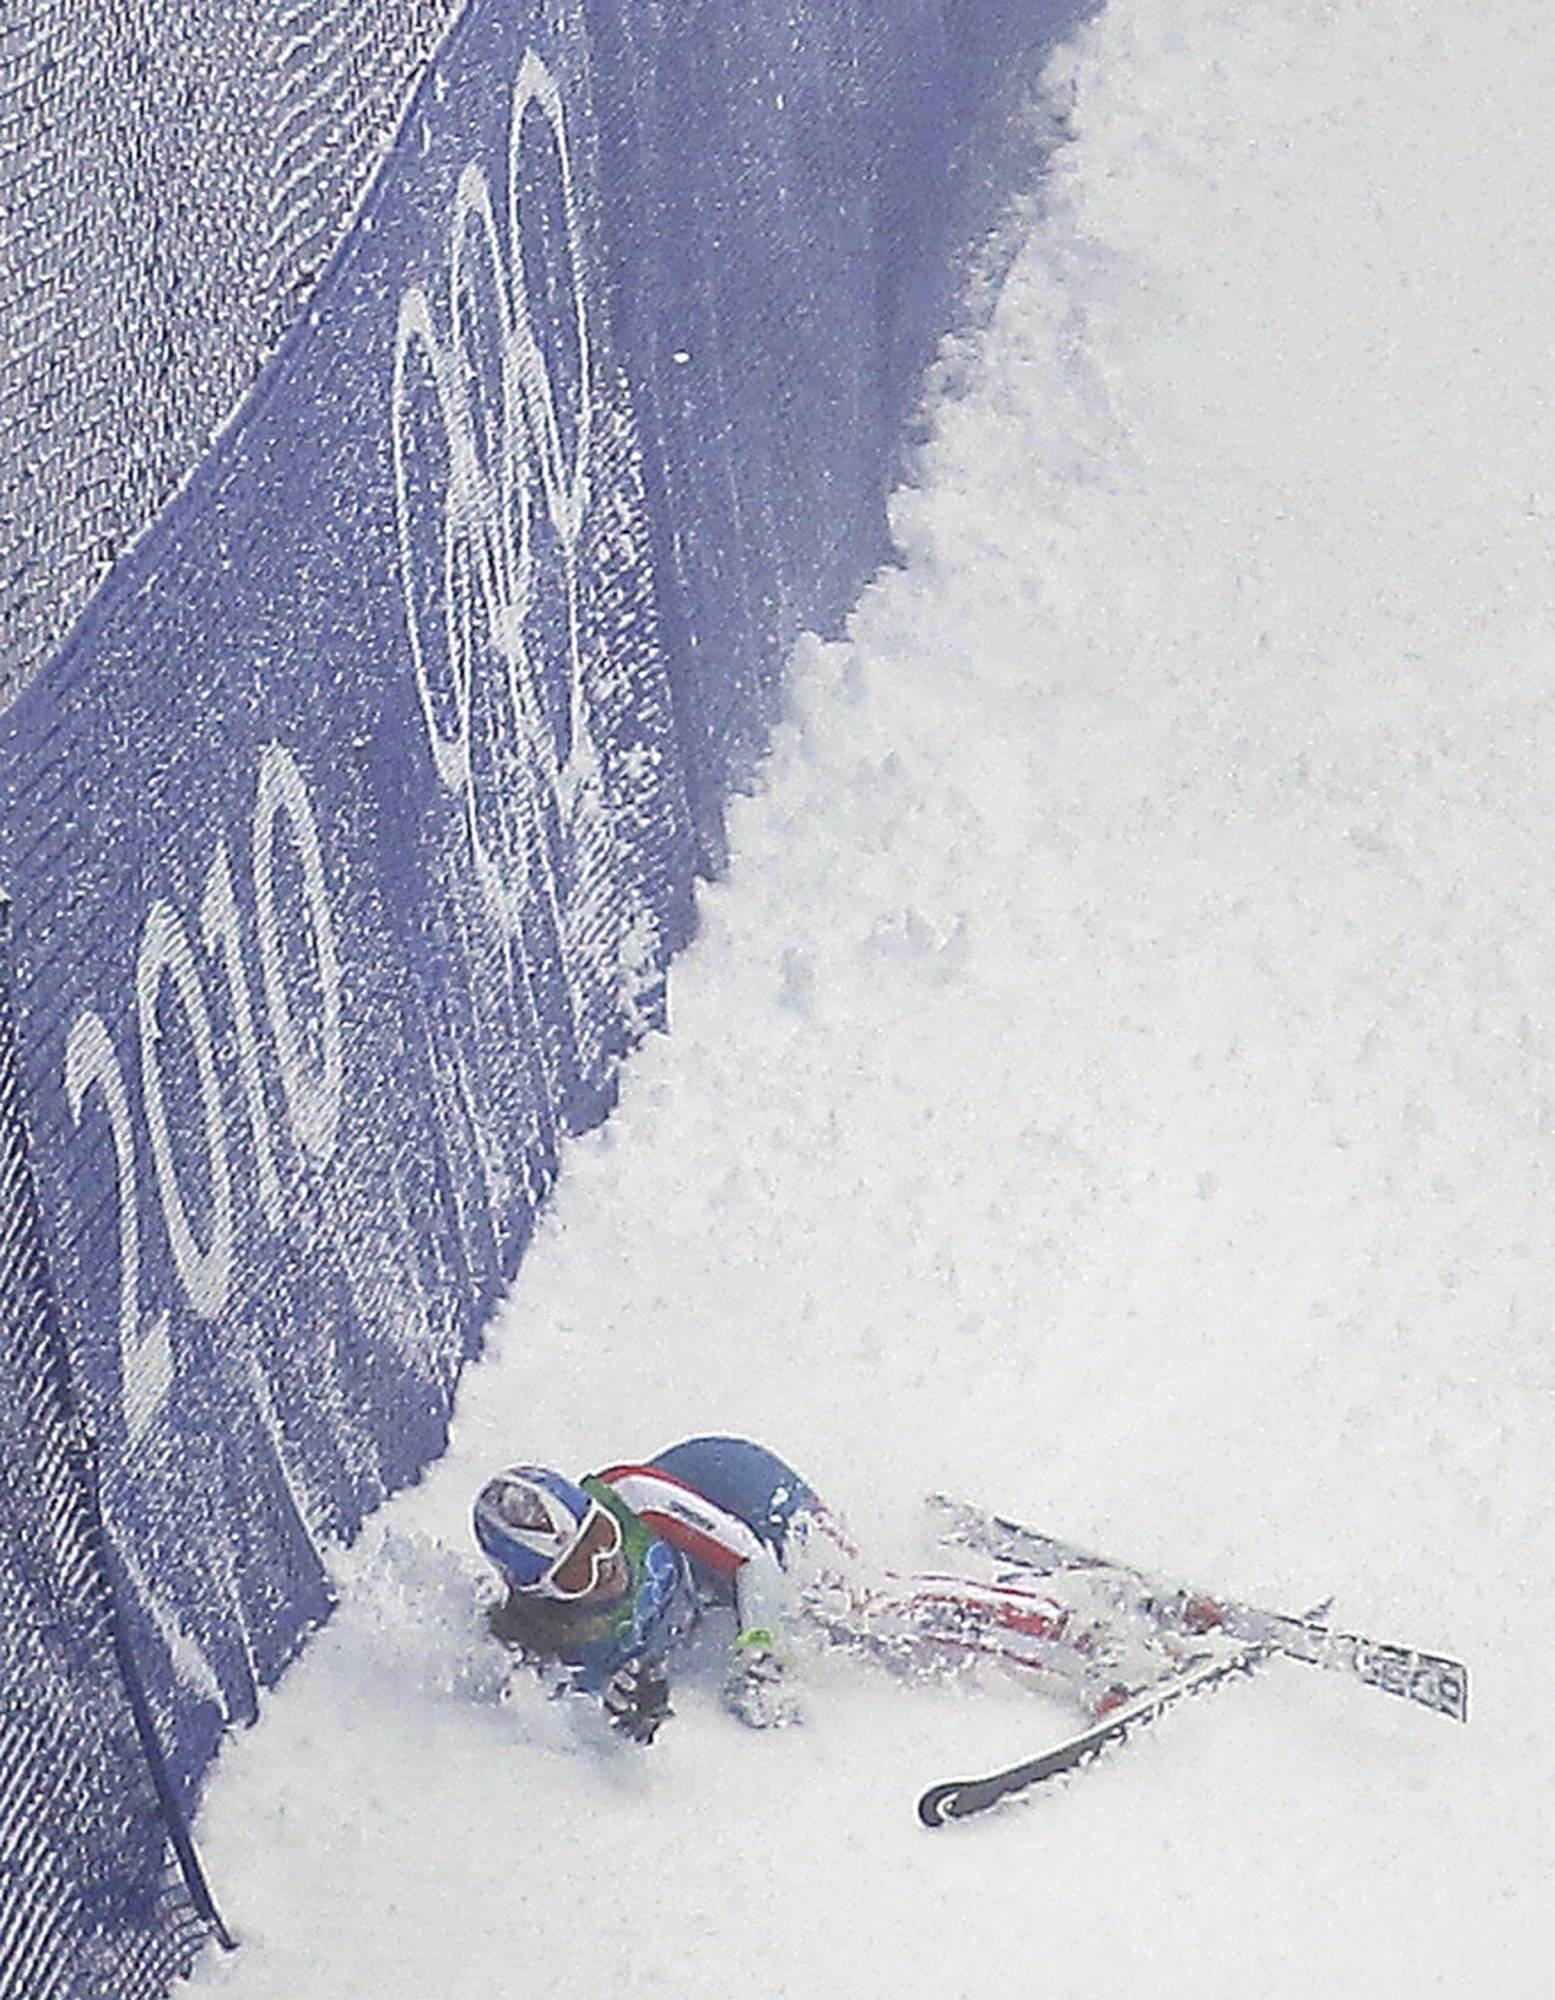 Lindsey Vonn of the United States lays in the snow after crashing during the first run of the Women's giant slalom.